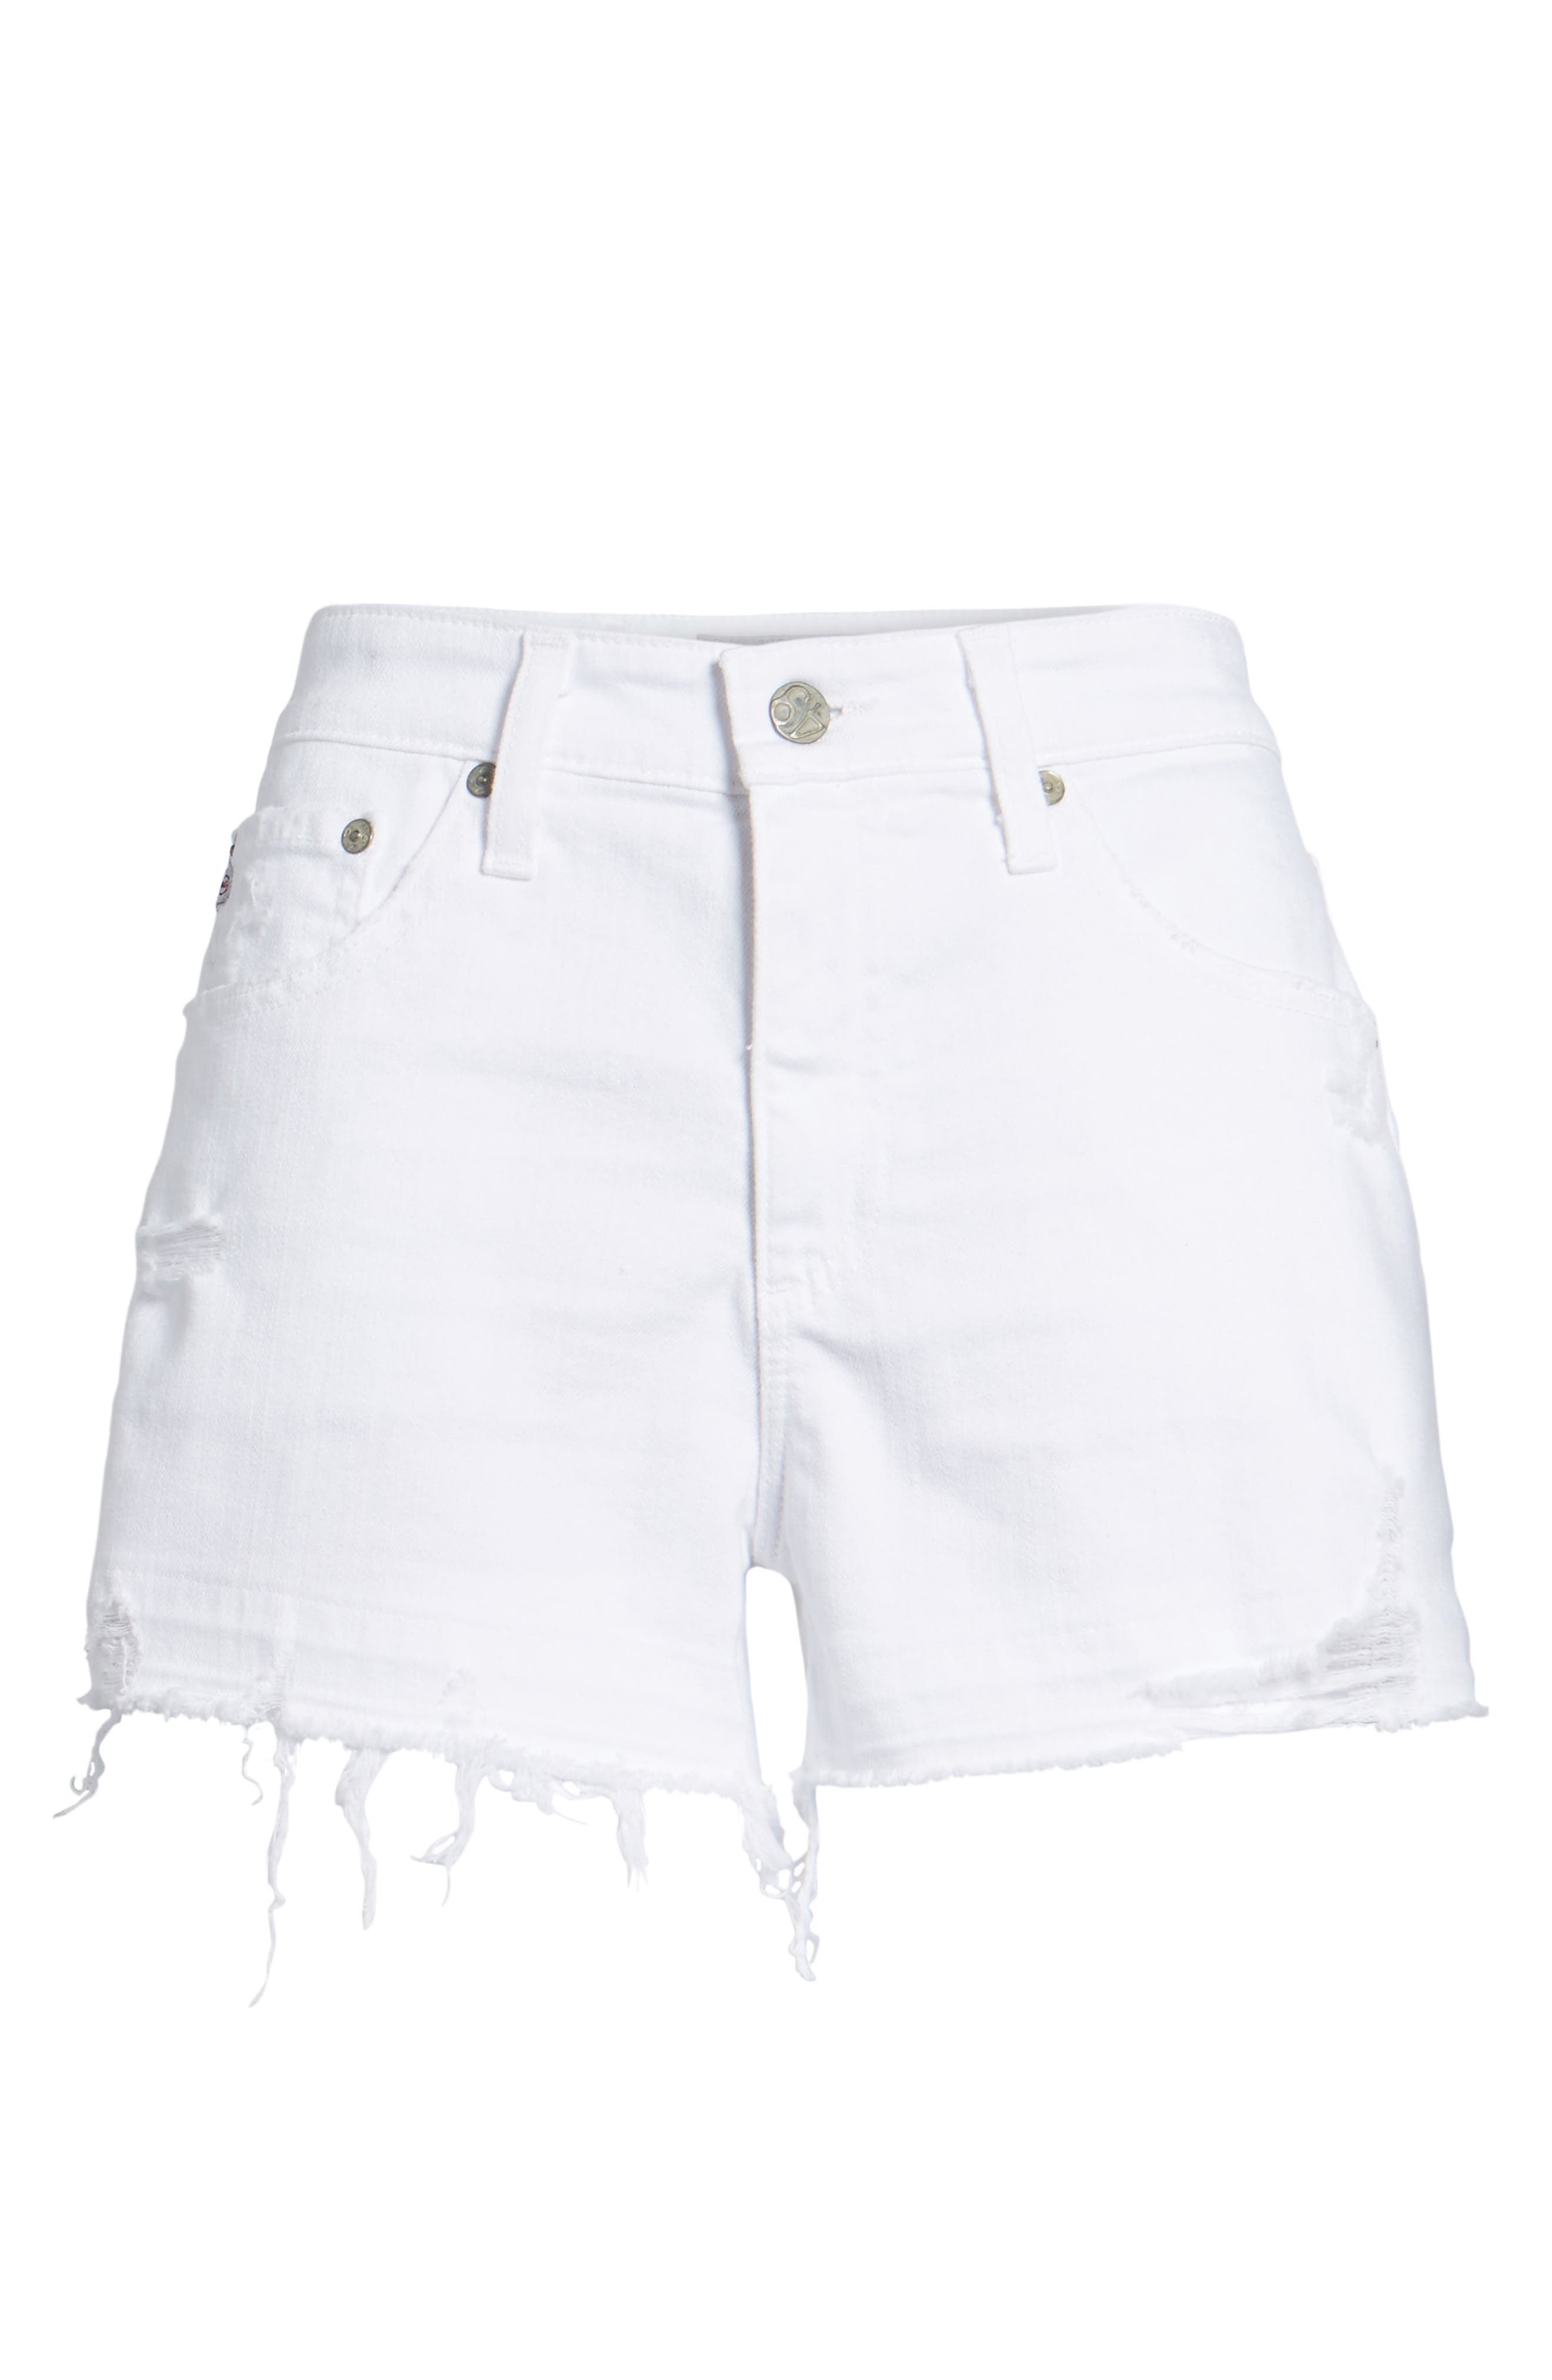 Bryn High Rise Cutoff Denim Shorts,                             Alternate thumbnail 6, color,                             5 Years Tattered White